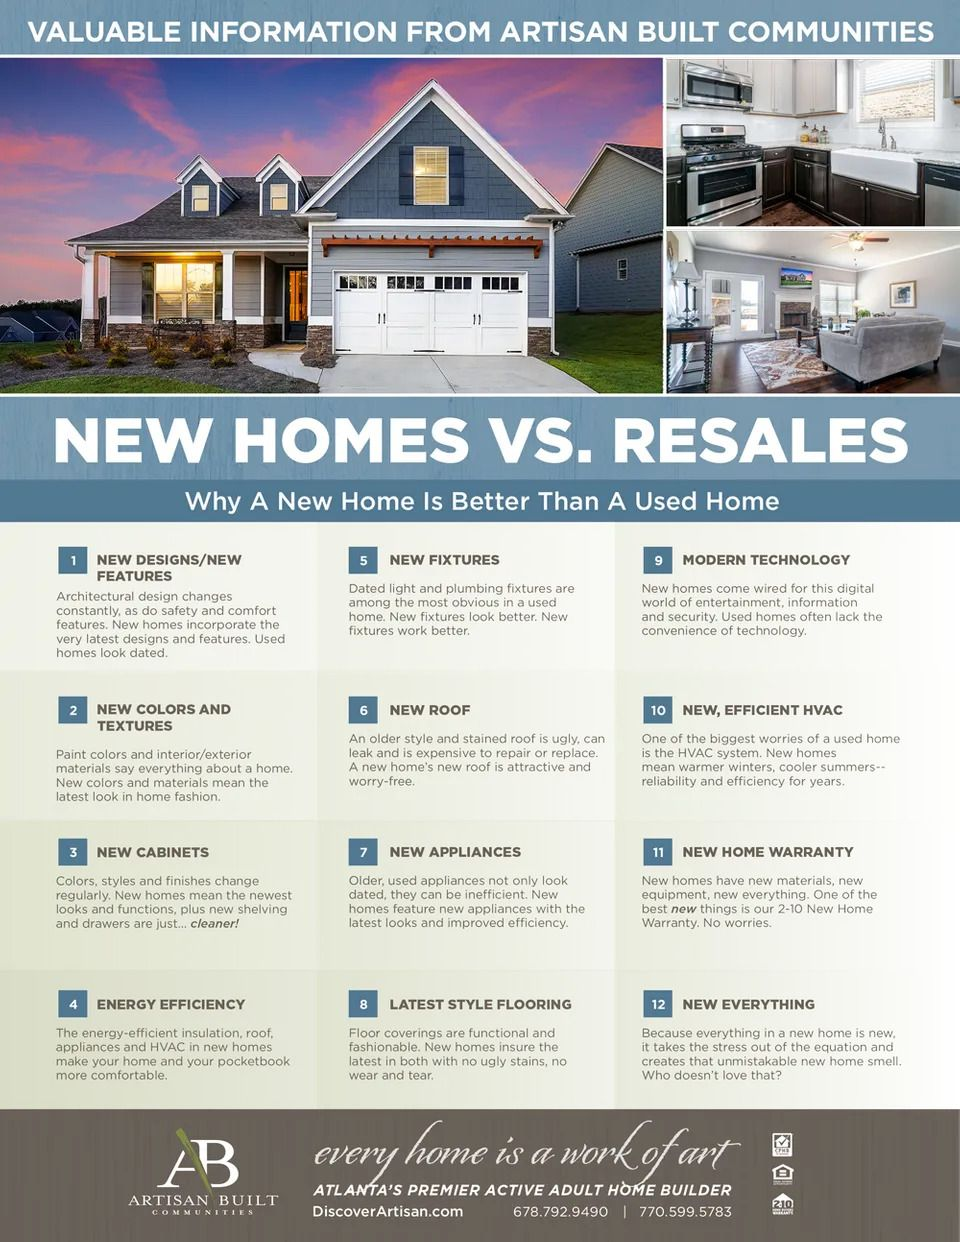 a chart featuring the difference between new homes and resales